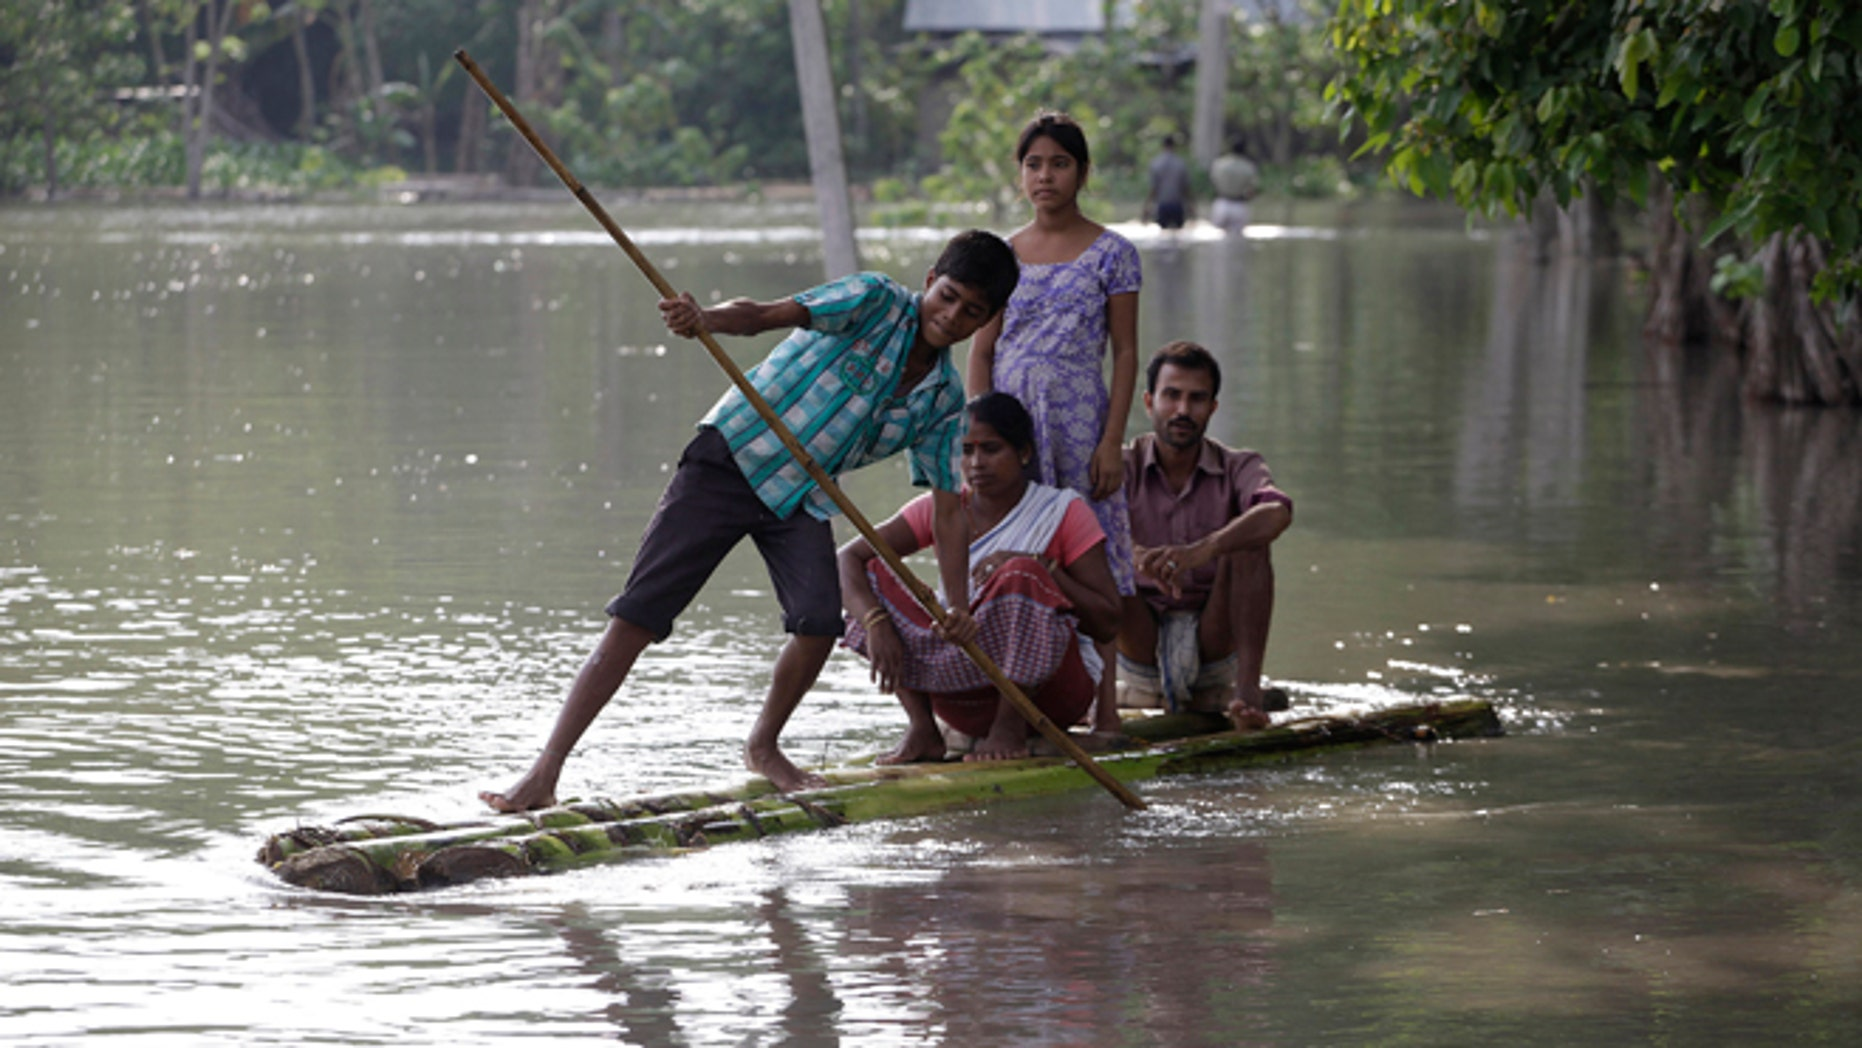 Sept. 22: A boy rows his family across floodwaters on a banana raft in Lachi Bishnupur village.